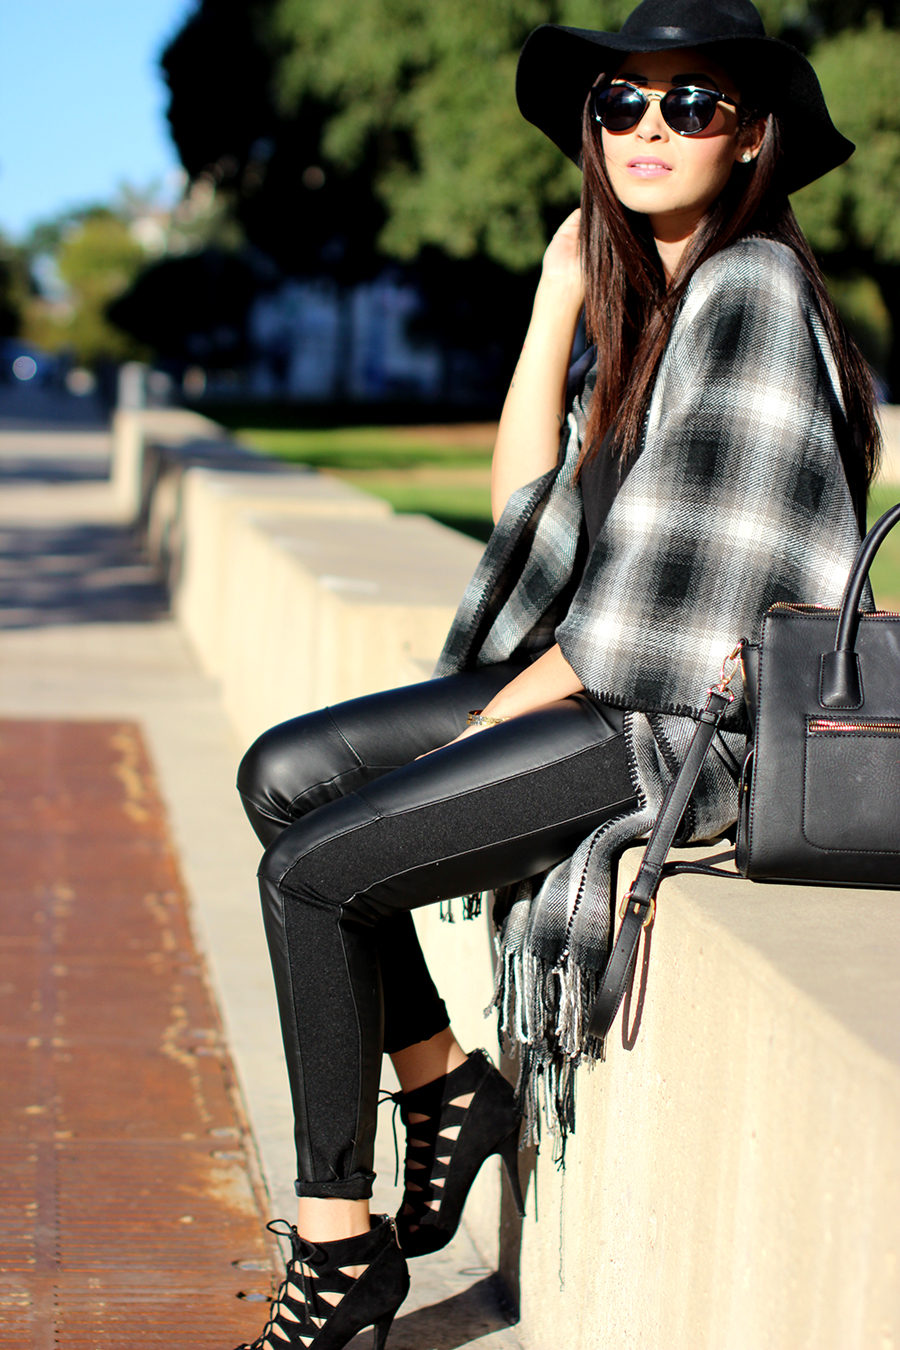 FIXIN-TO-THRILL-OVERSIZED-SCARF-CHECK-LEATHER-BLACK-NOVEMBER-ATX-AUSTIN-STYLE-BLOG-FW15-TRENDY-CHIC-GLAM-TEXAS-6